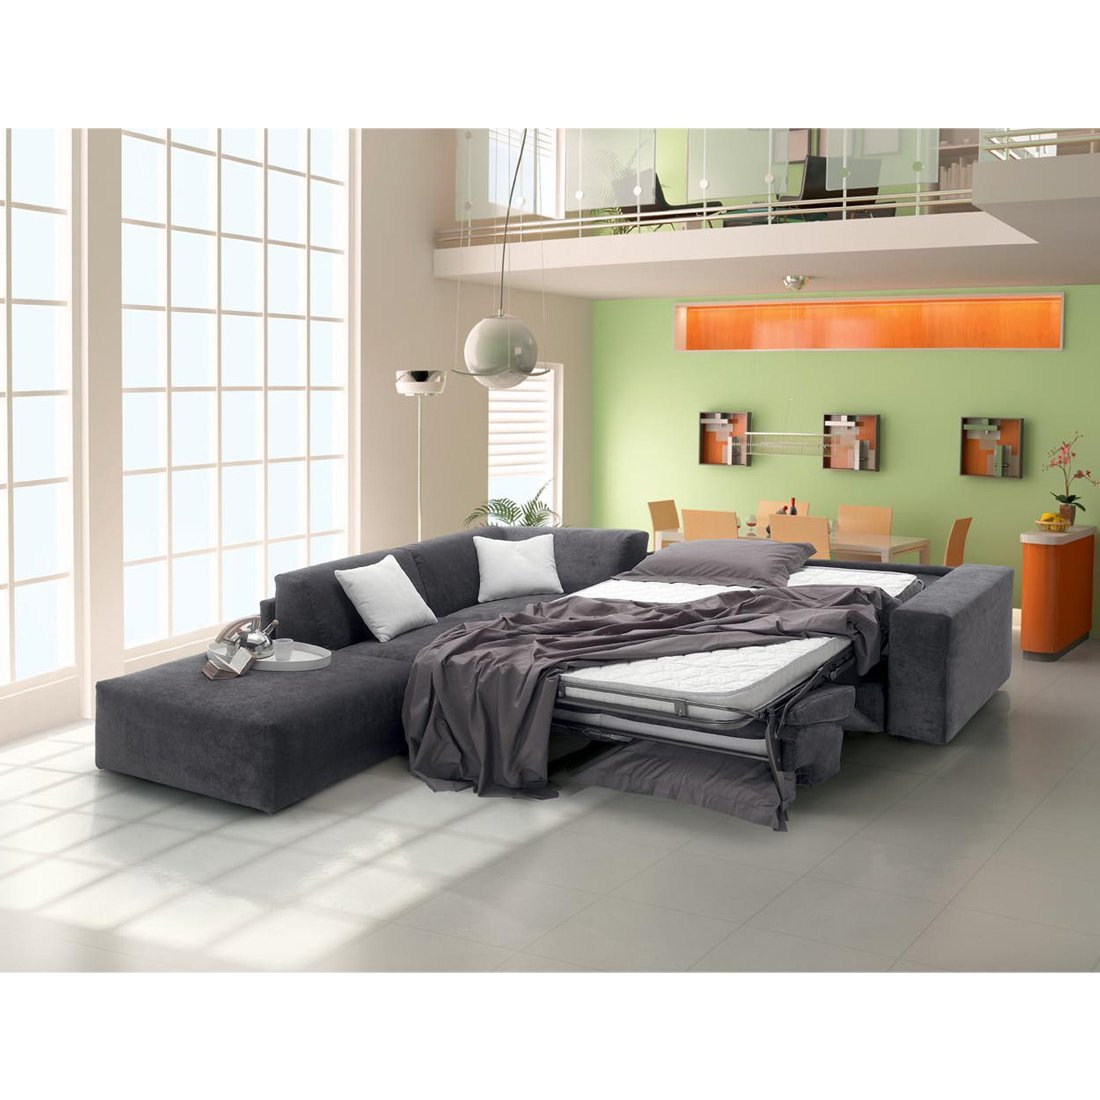 Canap d 39 angle convertible gris meubles et atmosph re - But canape convertible d angle ...